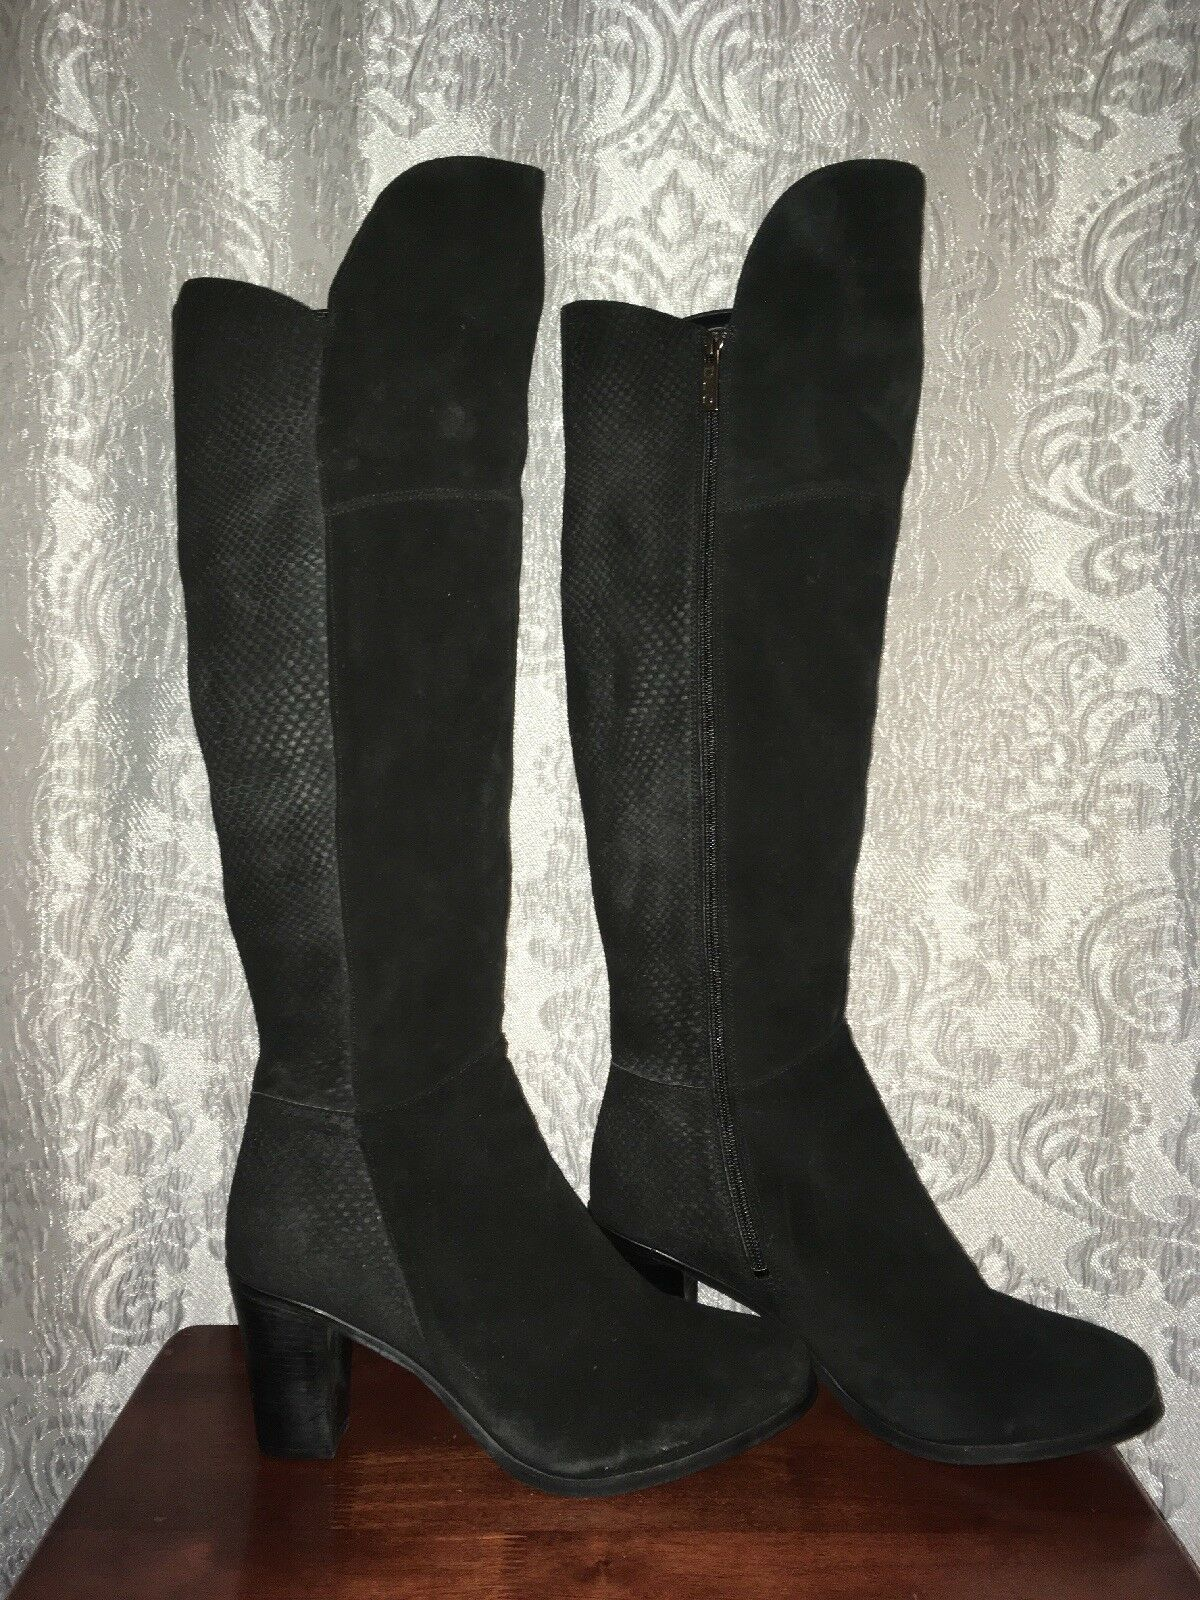 DUO BLACK LEATHER & SUEDE MIX ZIP UP BOOTS UK 9 EU 43